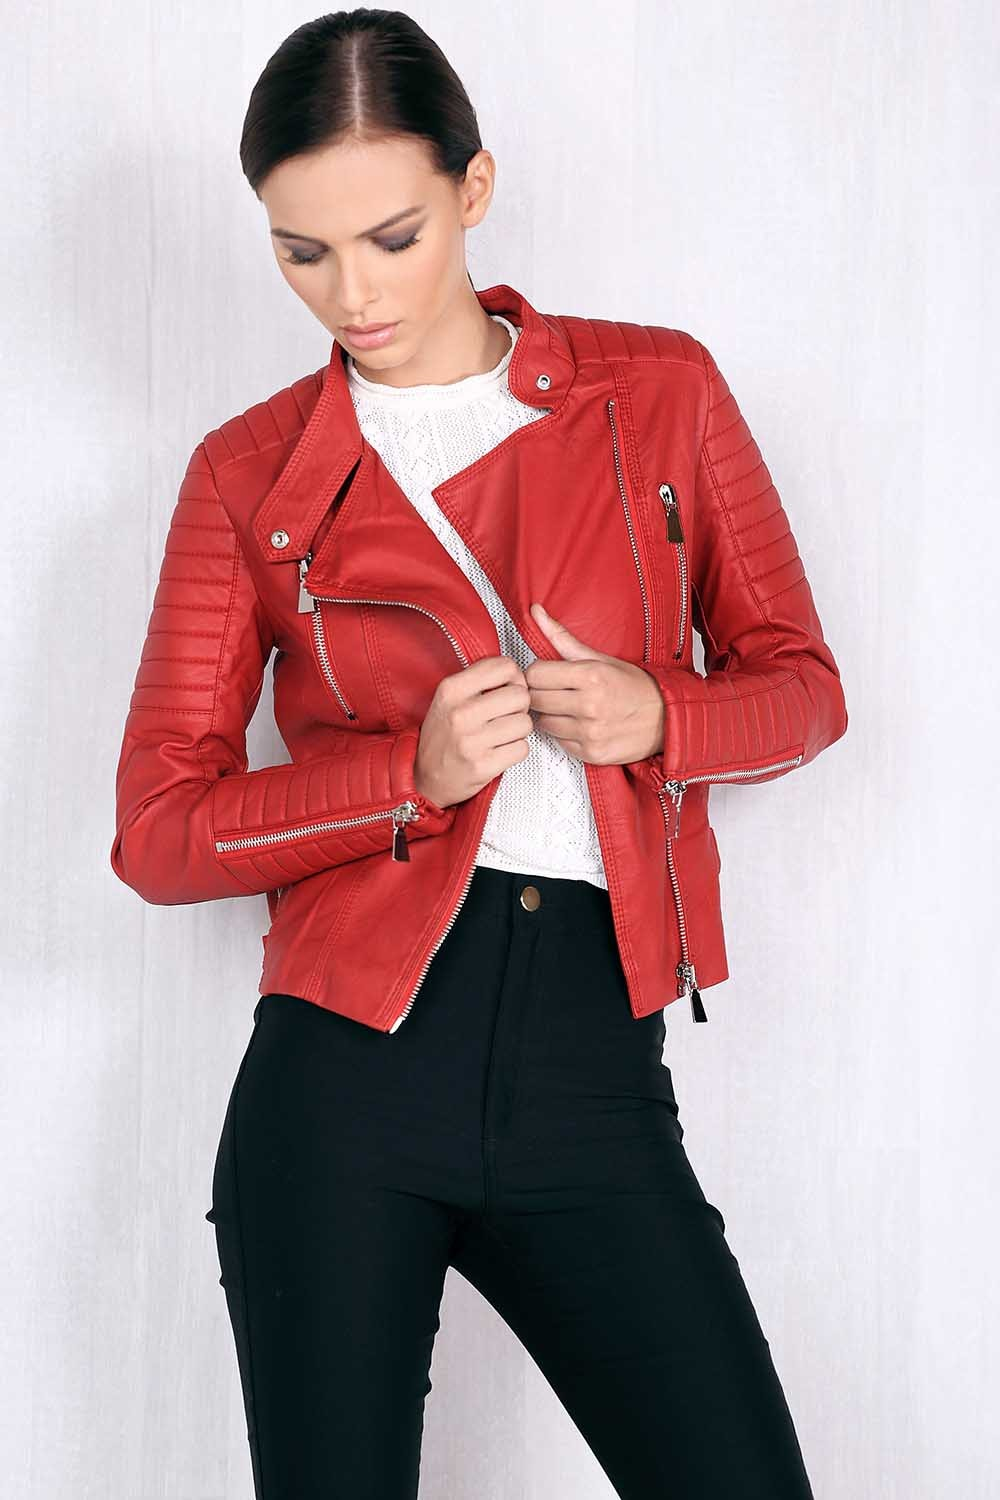 Collection Red Moto Jacket Pictures Best Fashion Trends